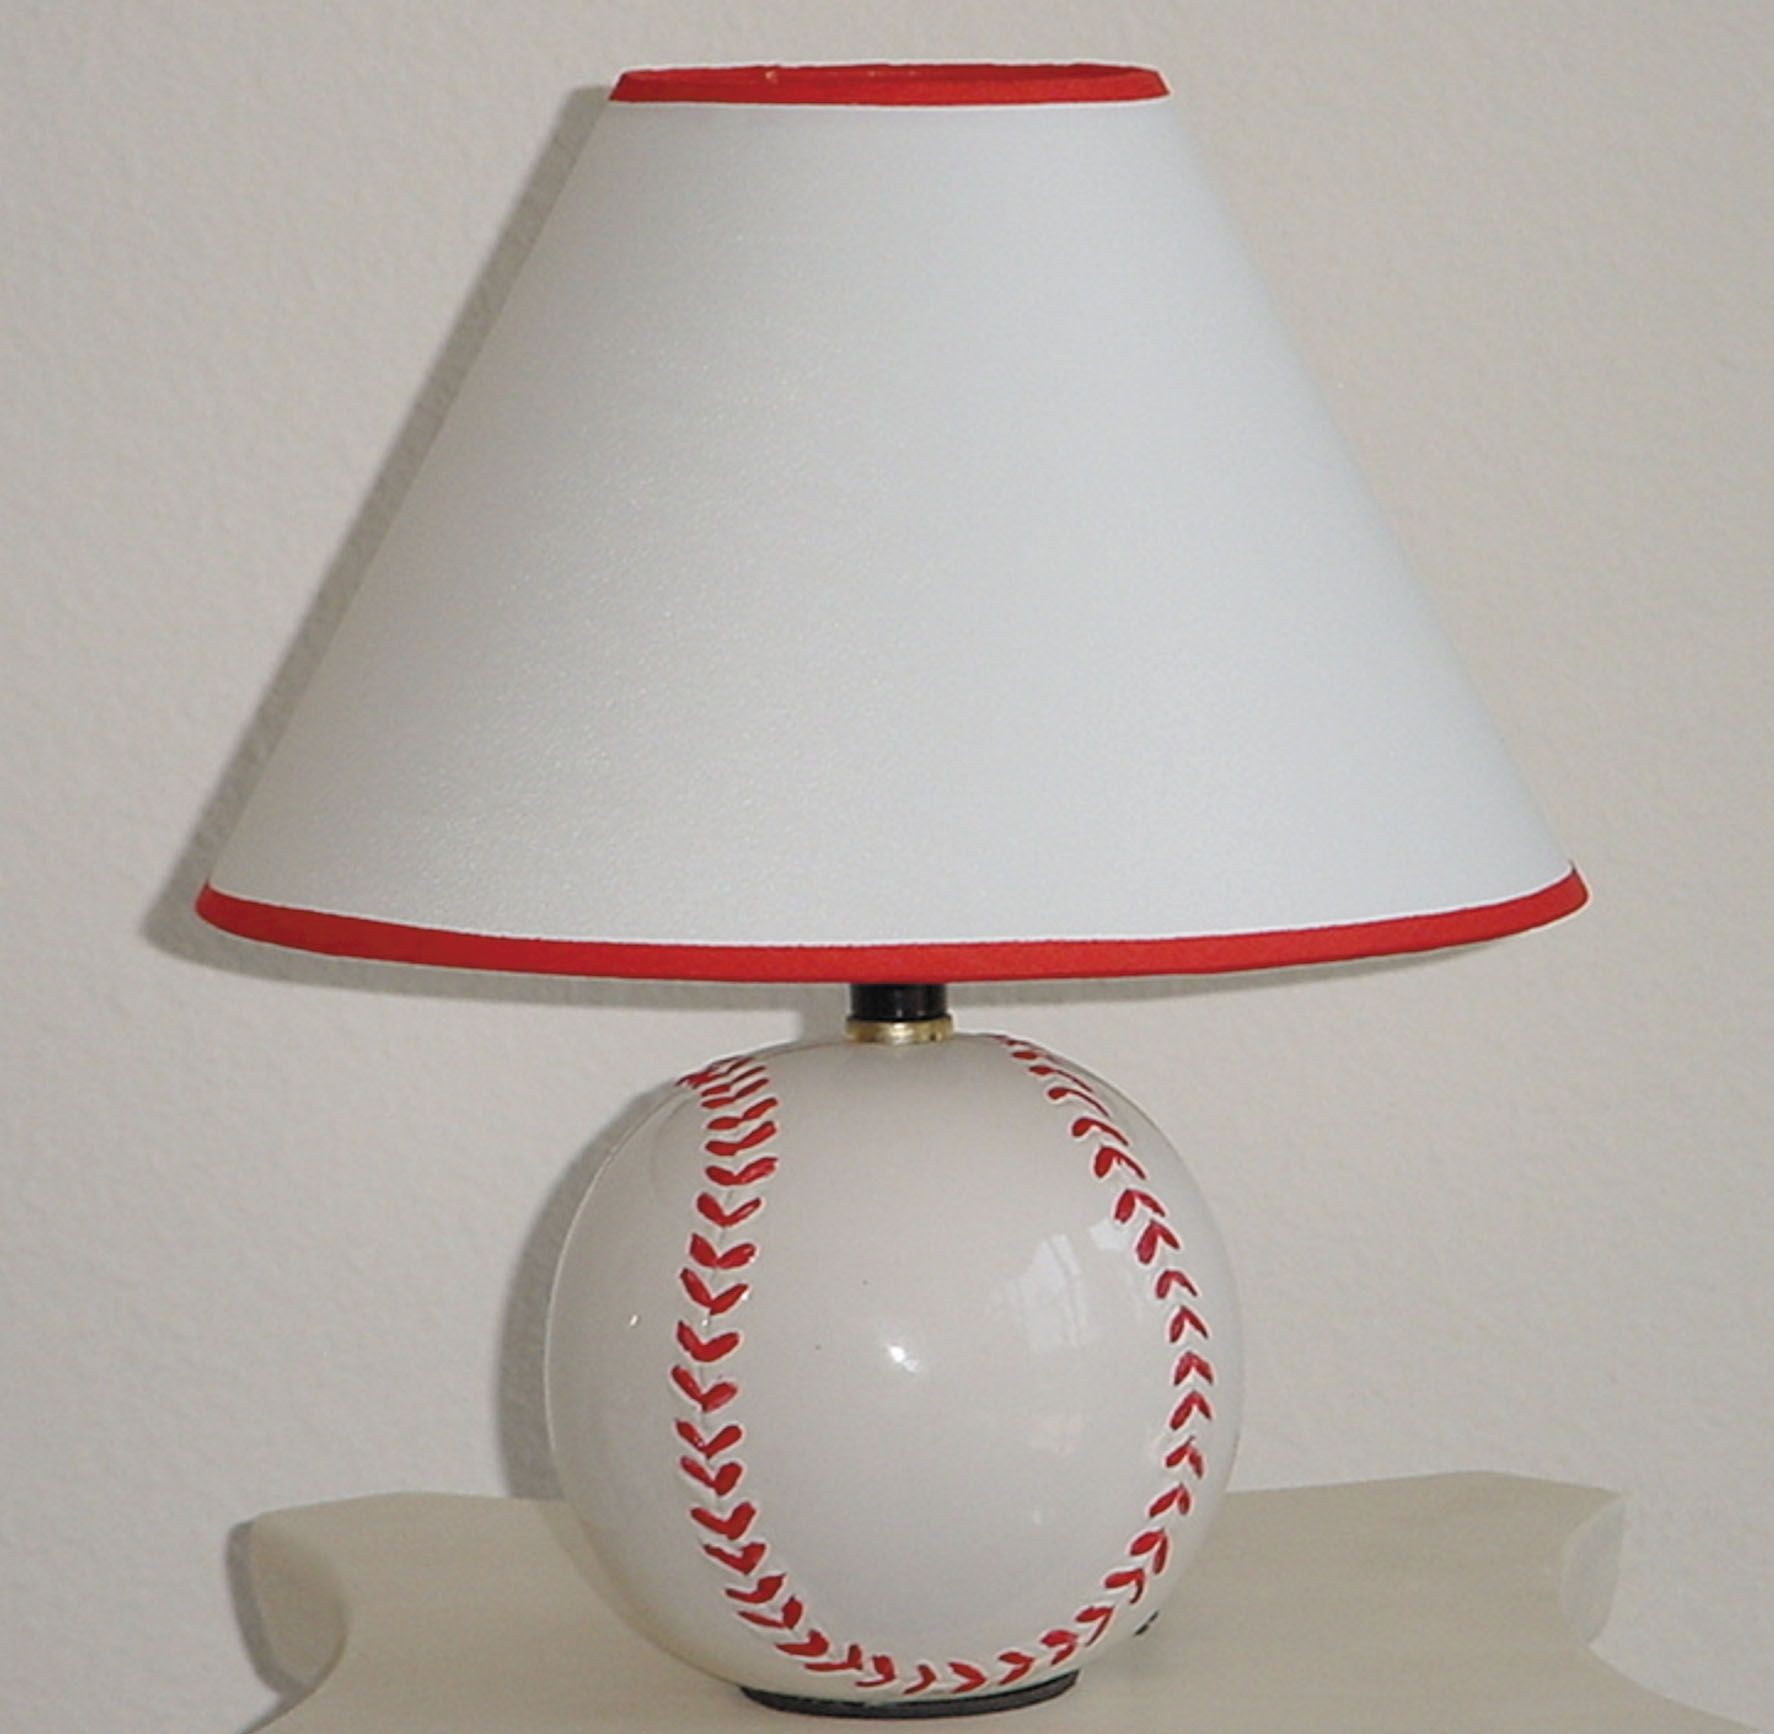 All star lamps baseball table lamp set of 8 from acme coleman all star lamps baseball table lamp set of 8 geotapseo Image collections